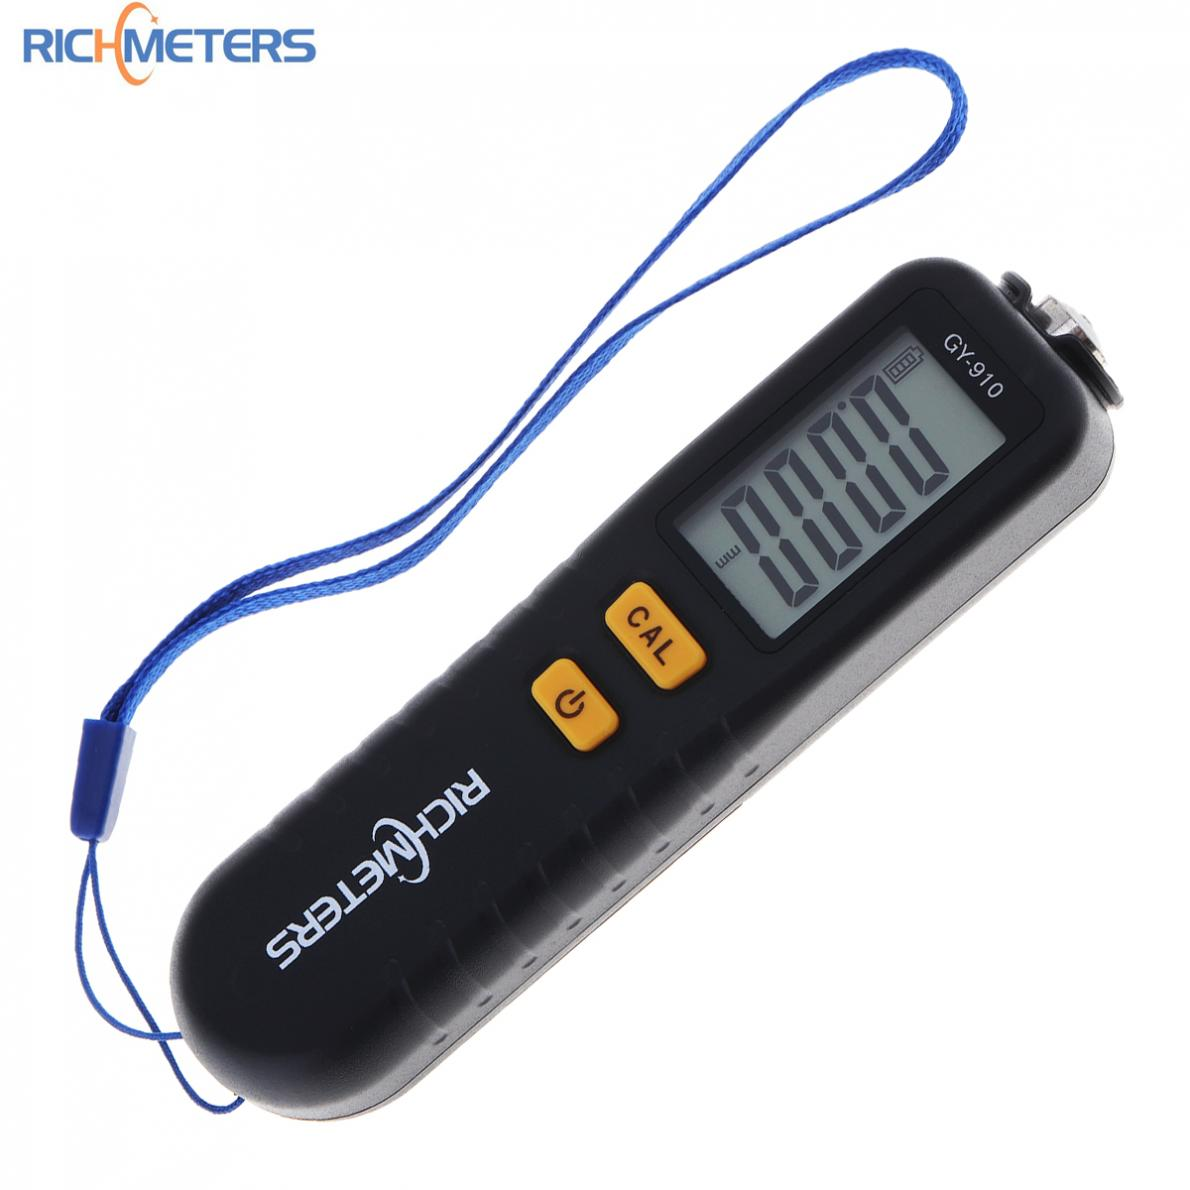 GY910 Digital Coating Thickness Gauge 1 micron/0-1300 Car Paint Film Thickness Tester Meter Measuring FE/NFE with Russian Manual digital coating thickness gauge 1 micron 0 1300 fe nfe car paint film auto gy910 digital thickness tester meter english russian